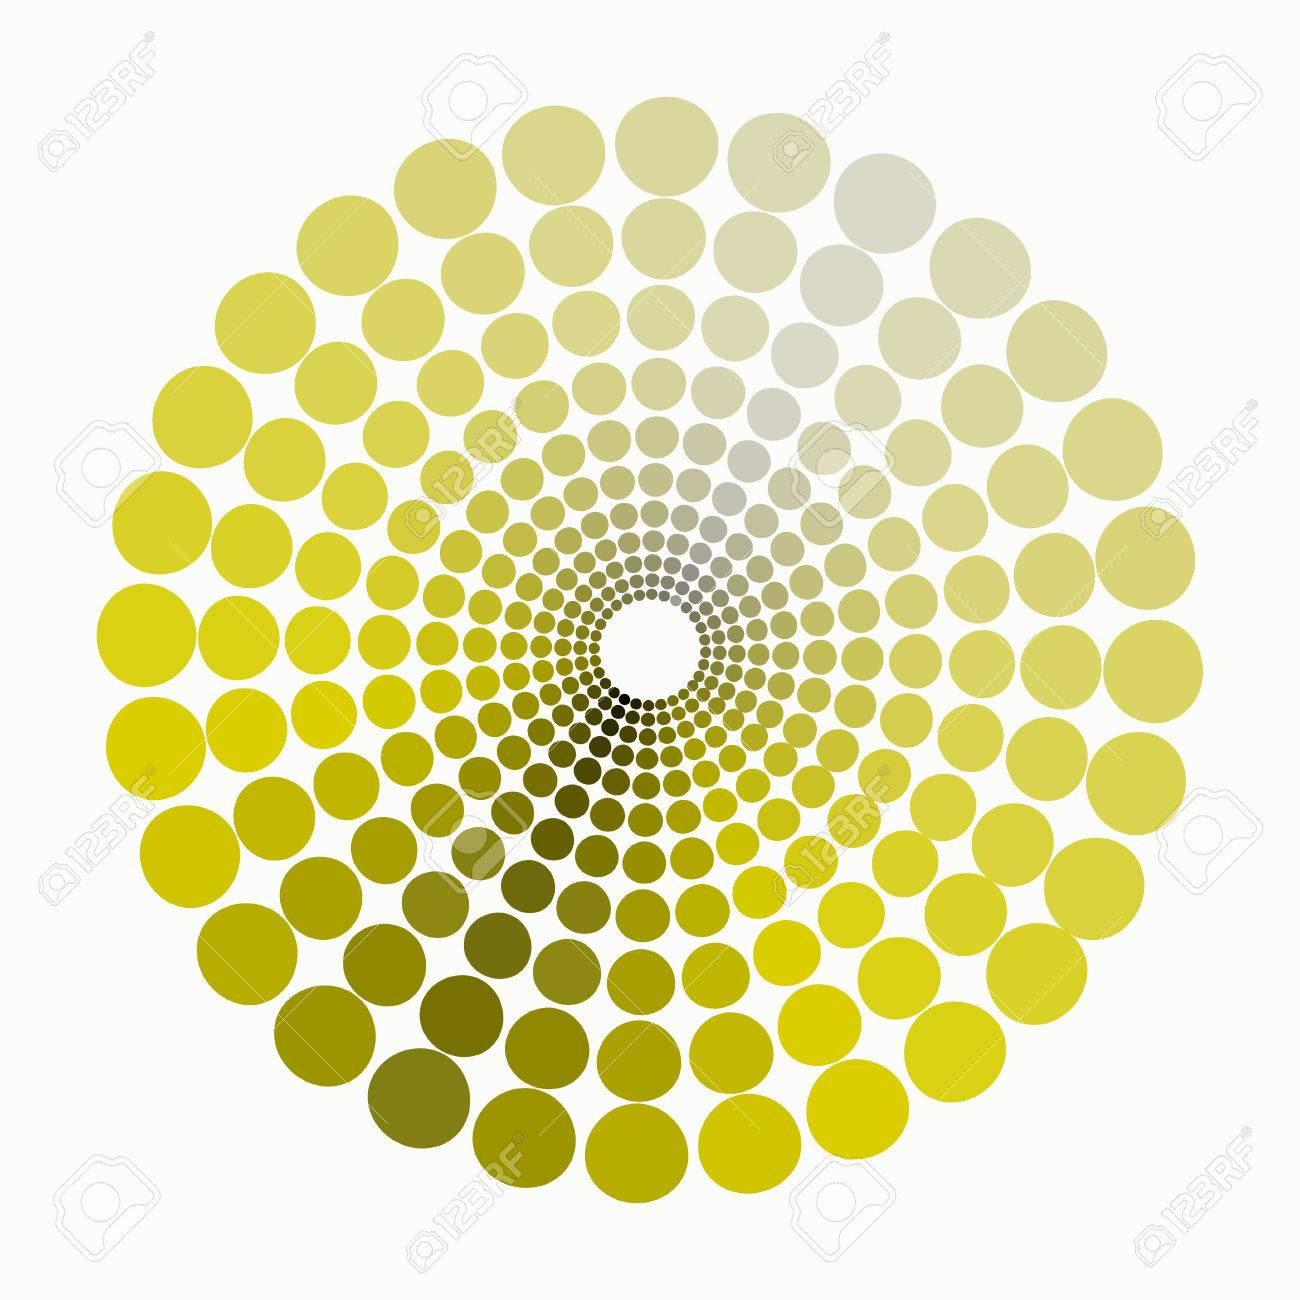 Shades Of Yellow Color Circle Dim Shades Of Yellow Patternvector Illustration